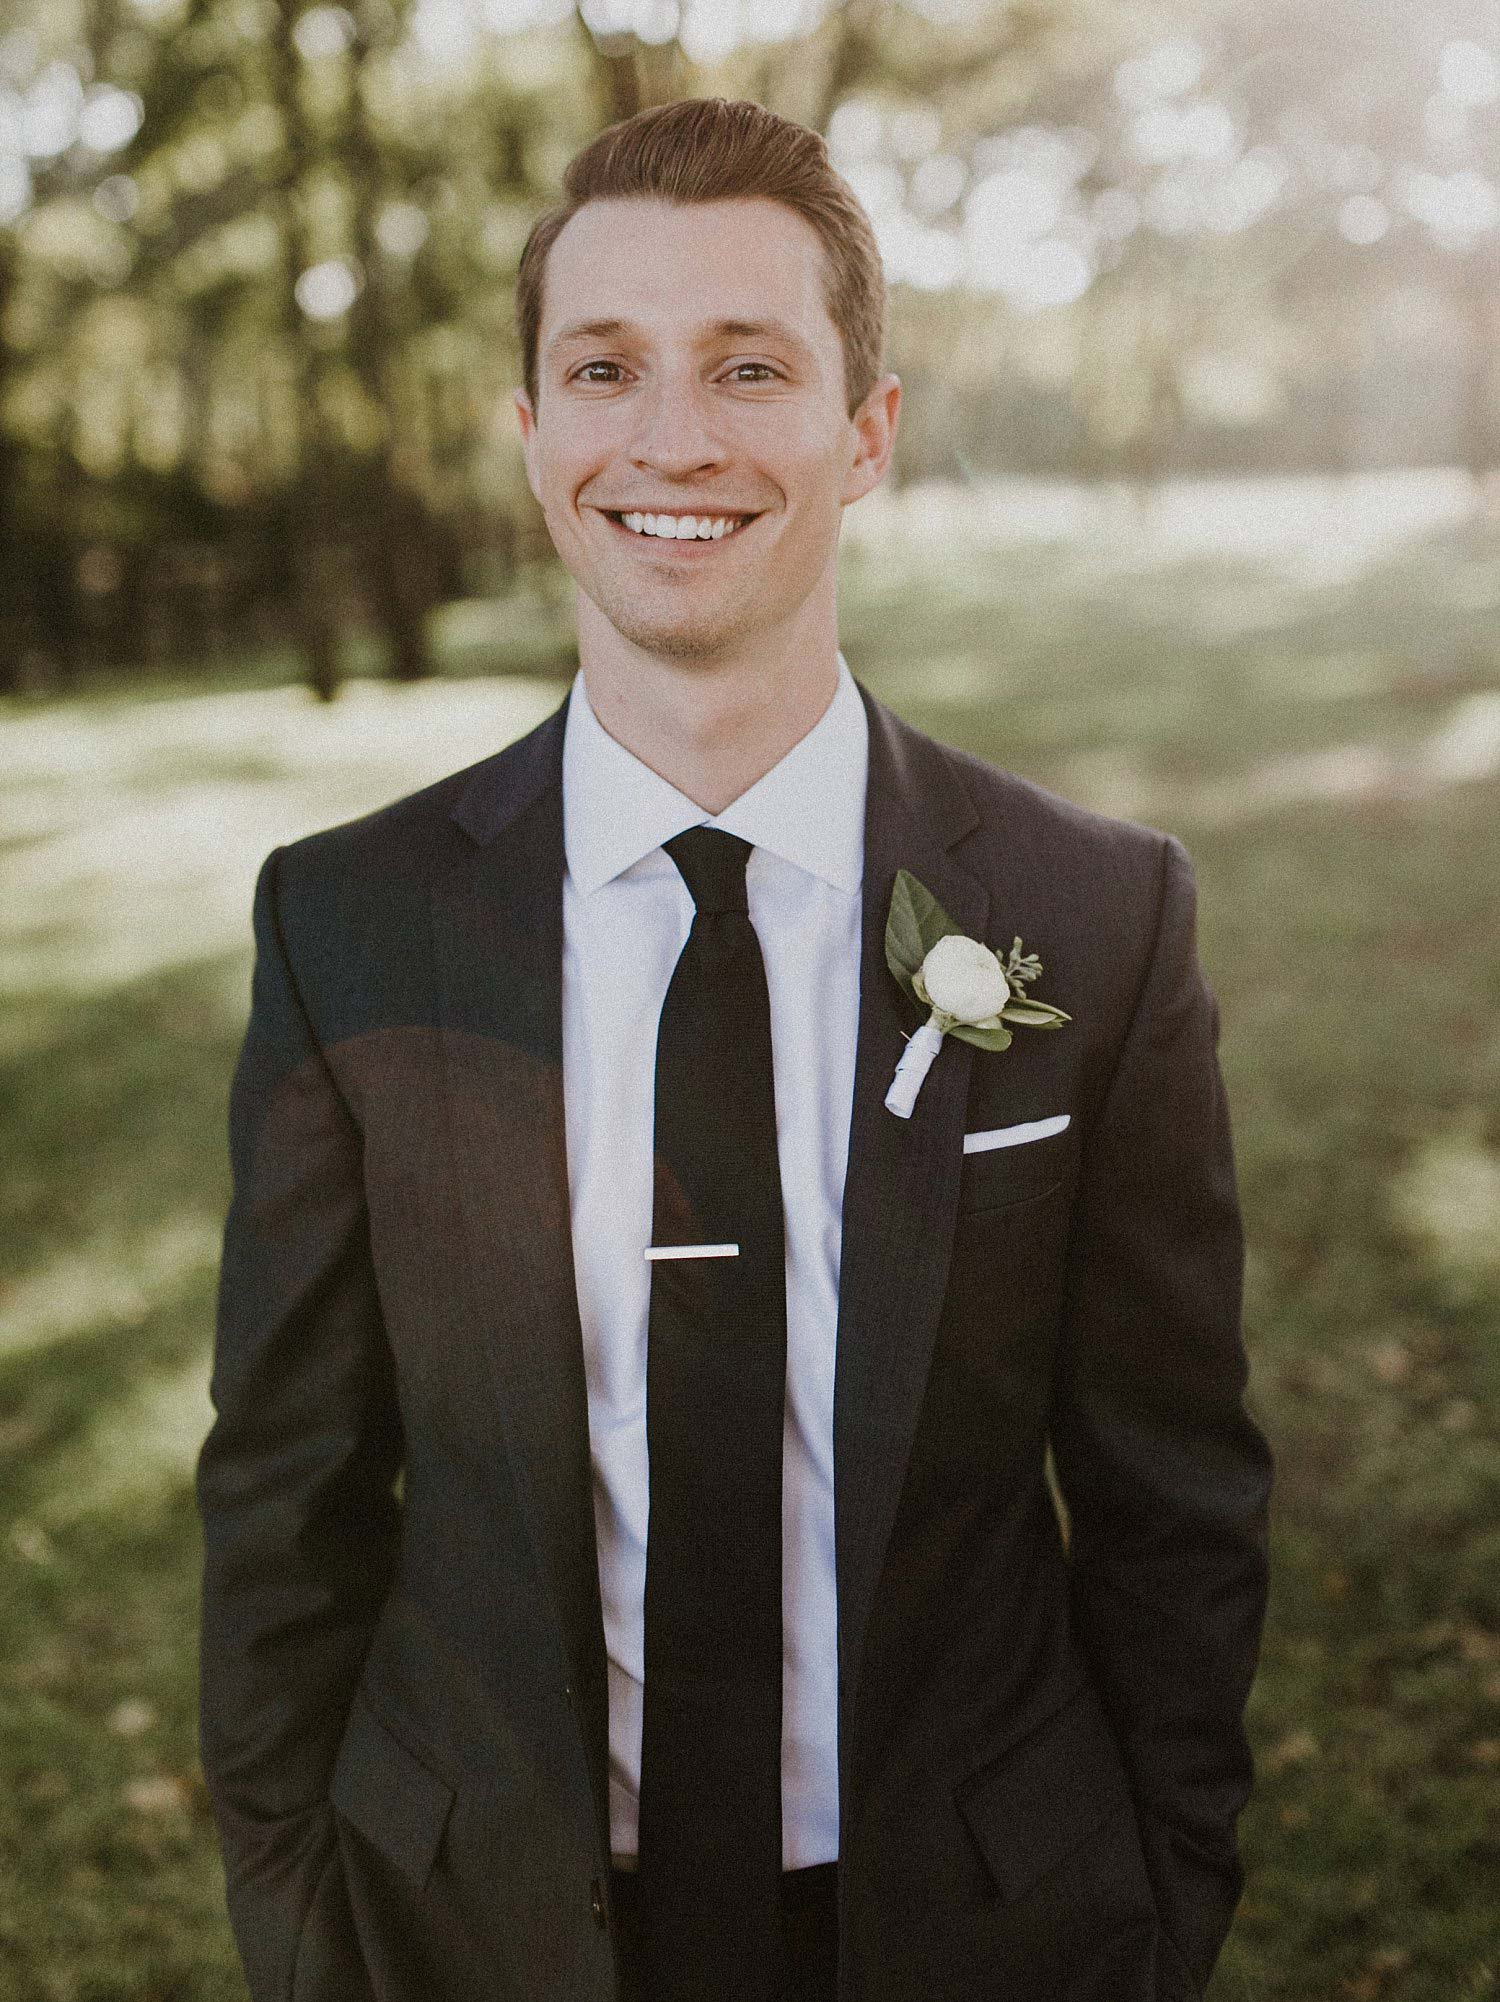 We love this classic groom's attire for this barn wedding.  He wore a dark grey suite, black tie, and white boutonniere